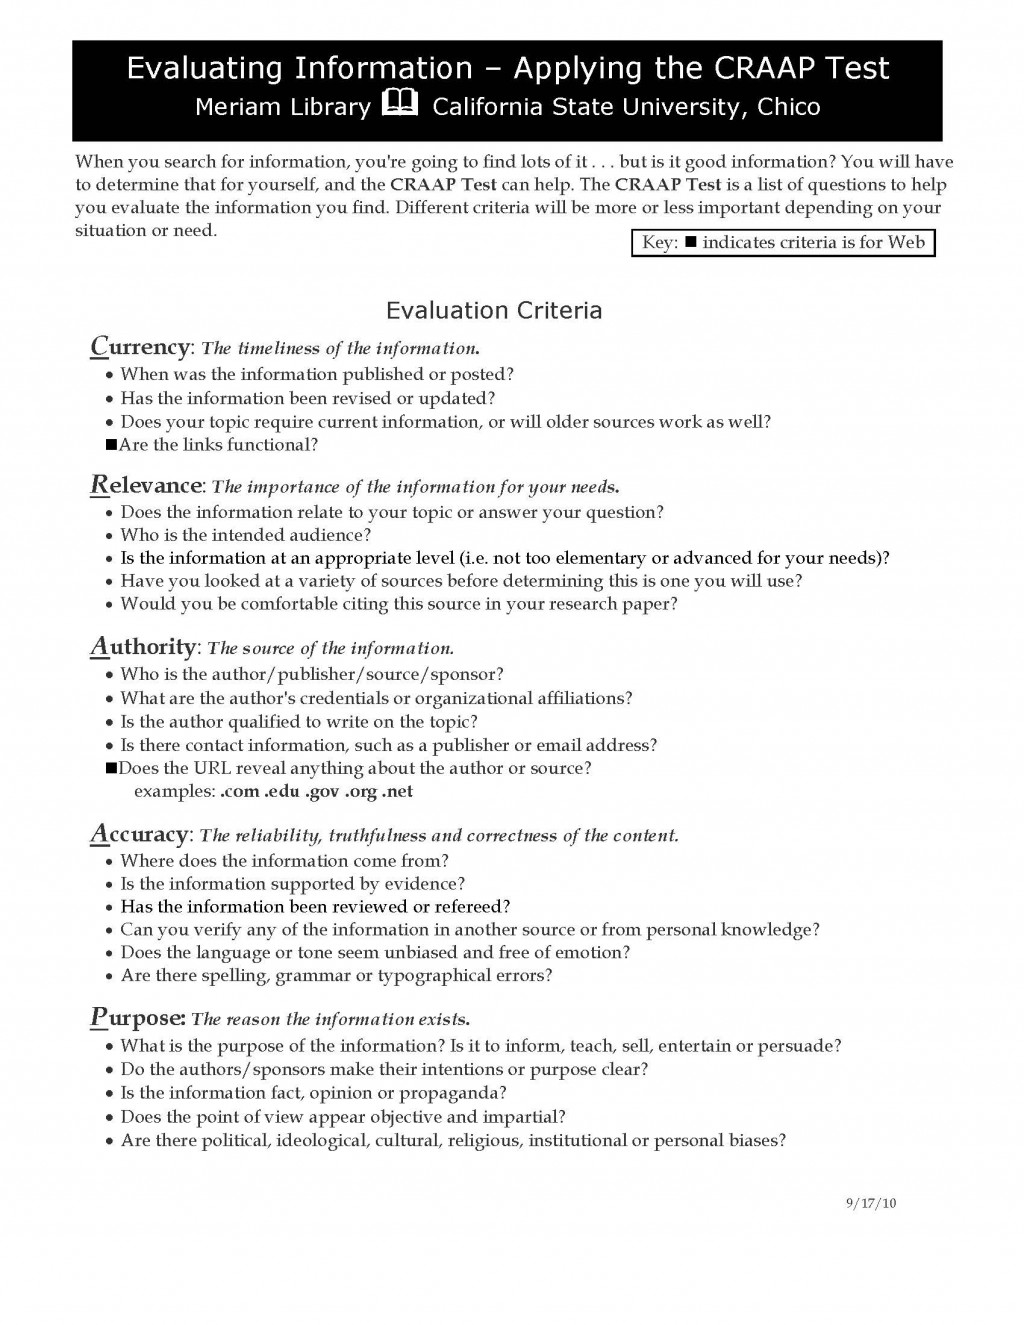 Need help with writing a research paper